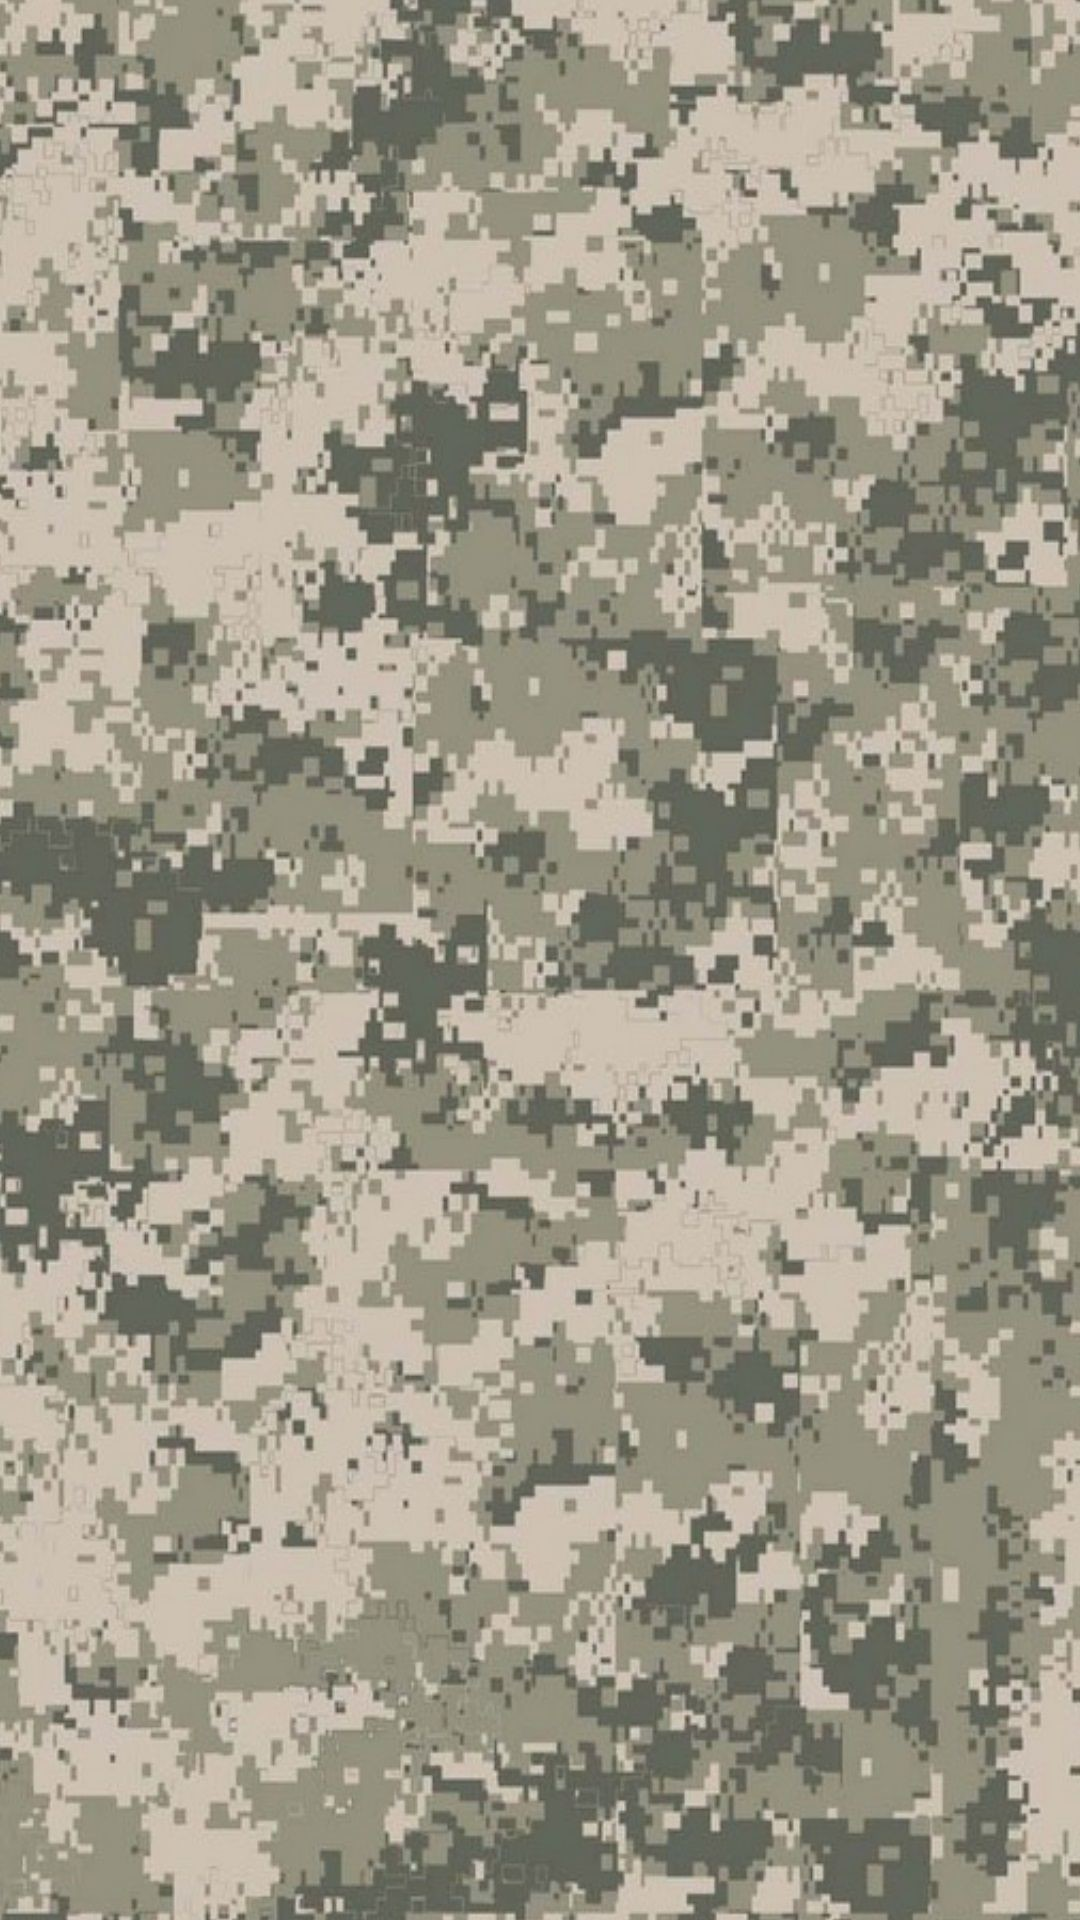 1080x1920 Camouflage wallpaper for iPhone or Android. Tags: camo, hunting, army,  backgrounds, mobile. #camouflage #camo #wallpaper